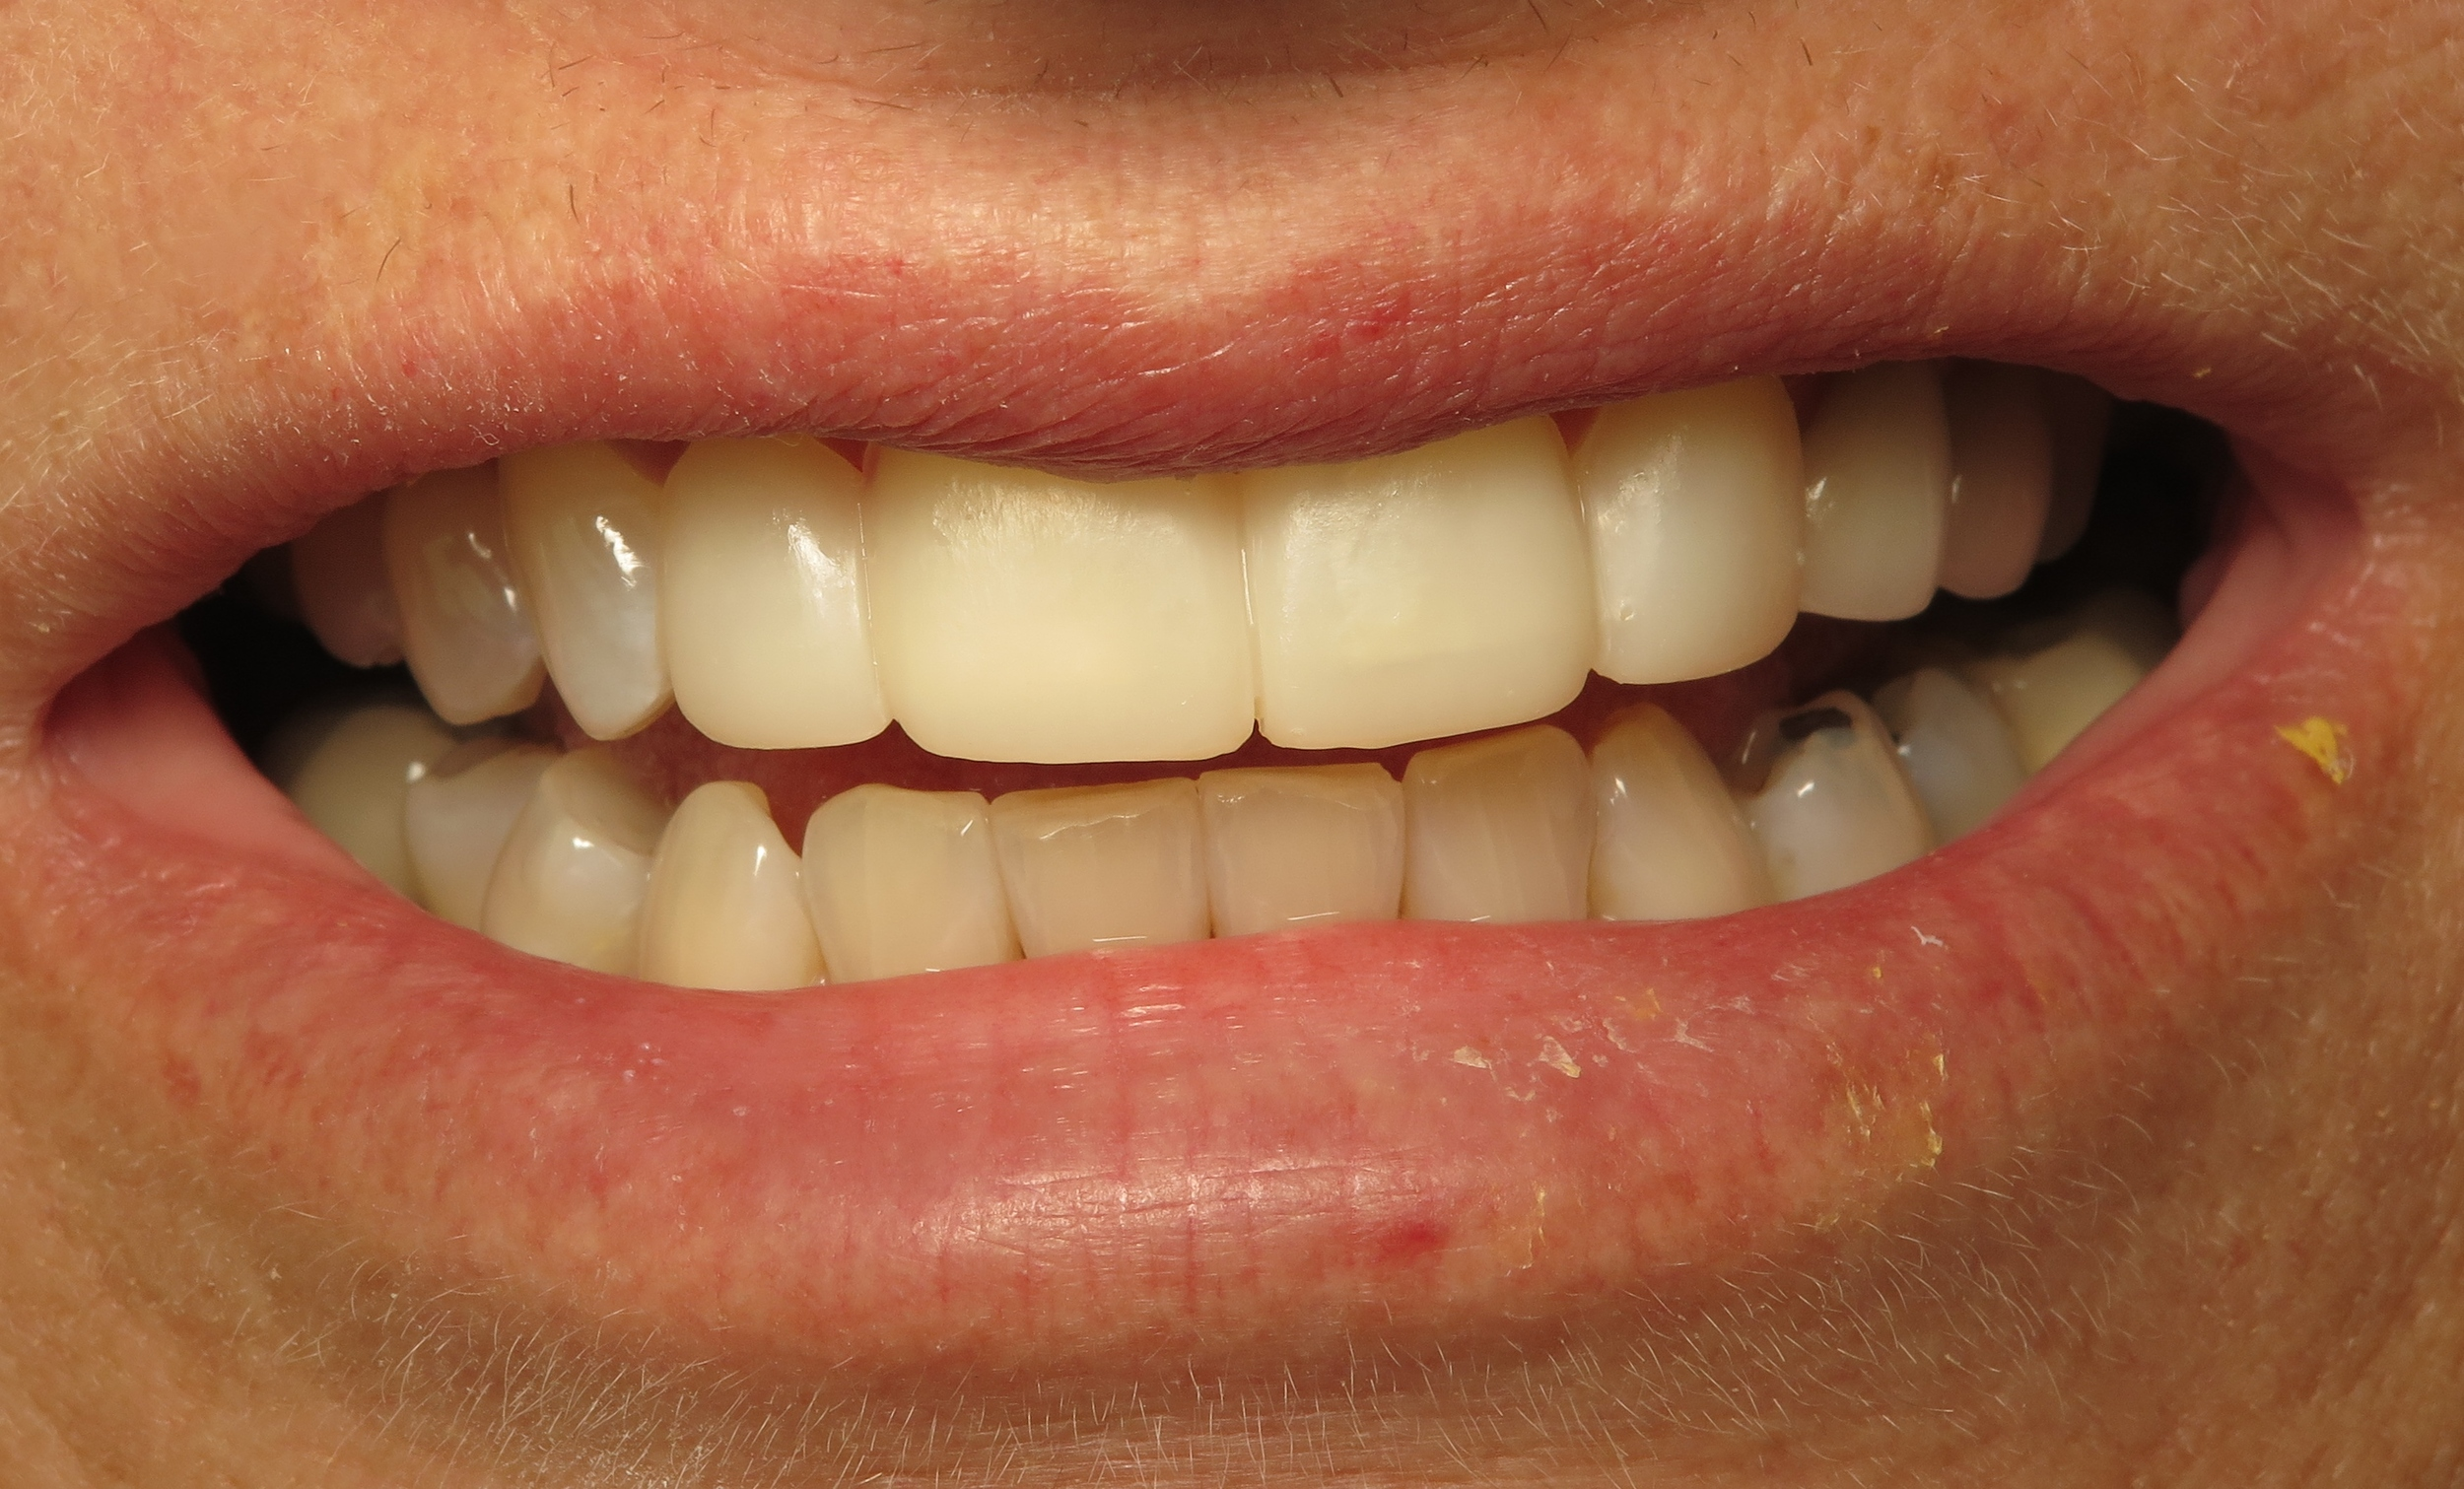 Here is the same patient with her temporary veneers on. You can really see how this procedure will create a more esthetic smile!